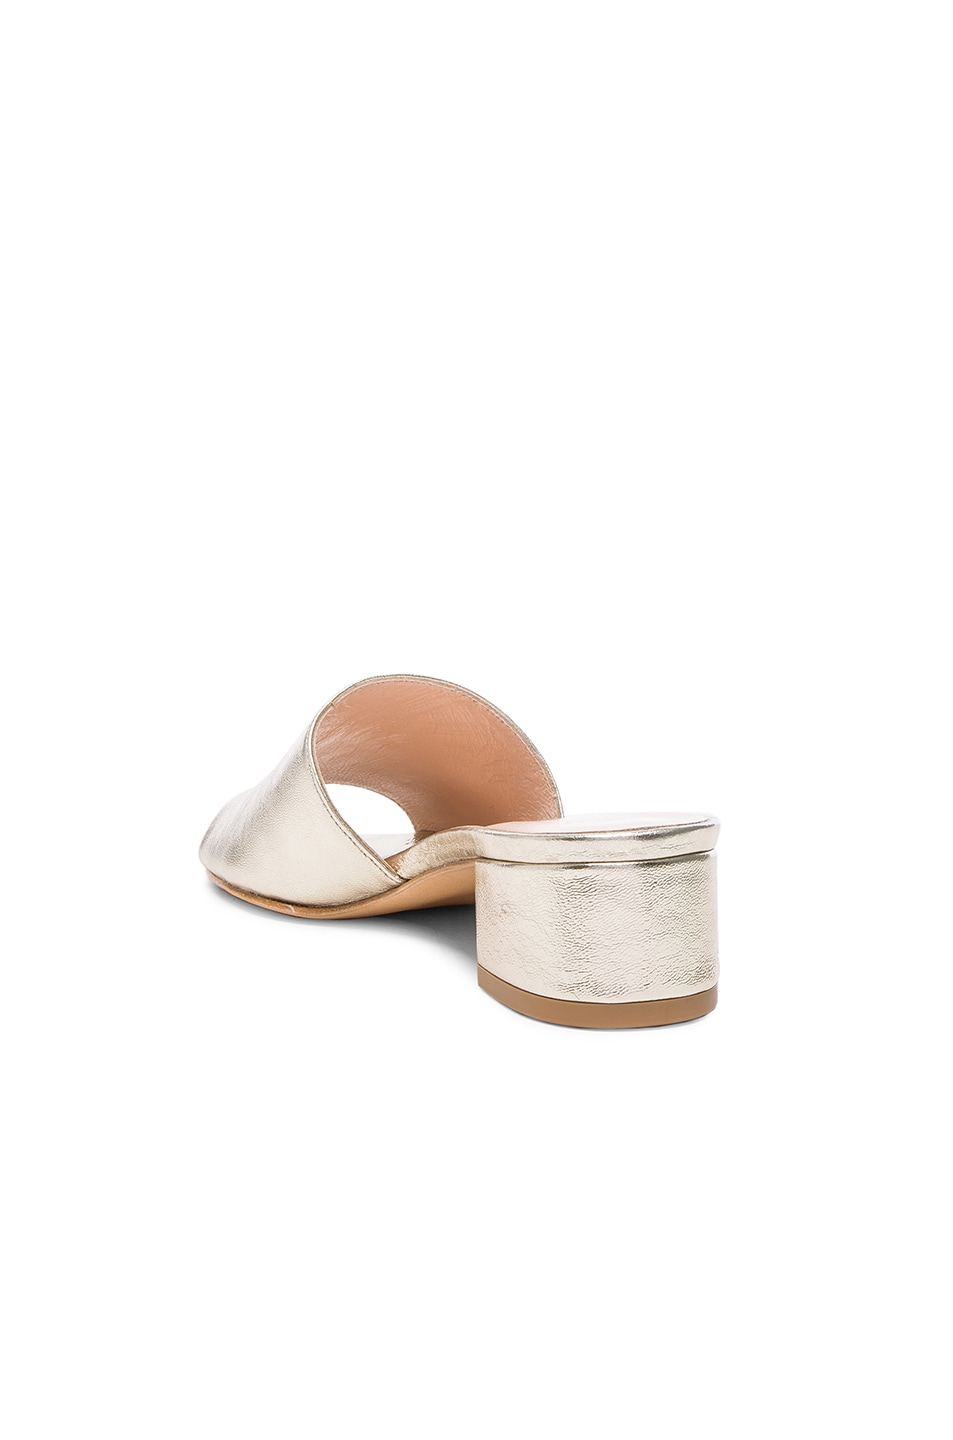 Image 3 of Maryam Nassir Zadeh Leather Sophie Slides in Prosecco Metallic